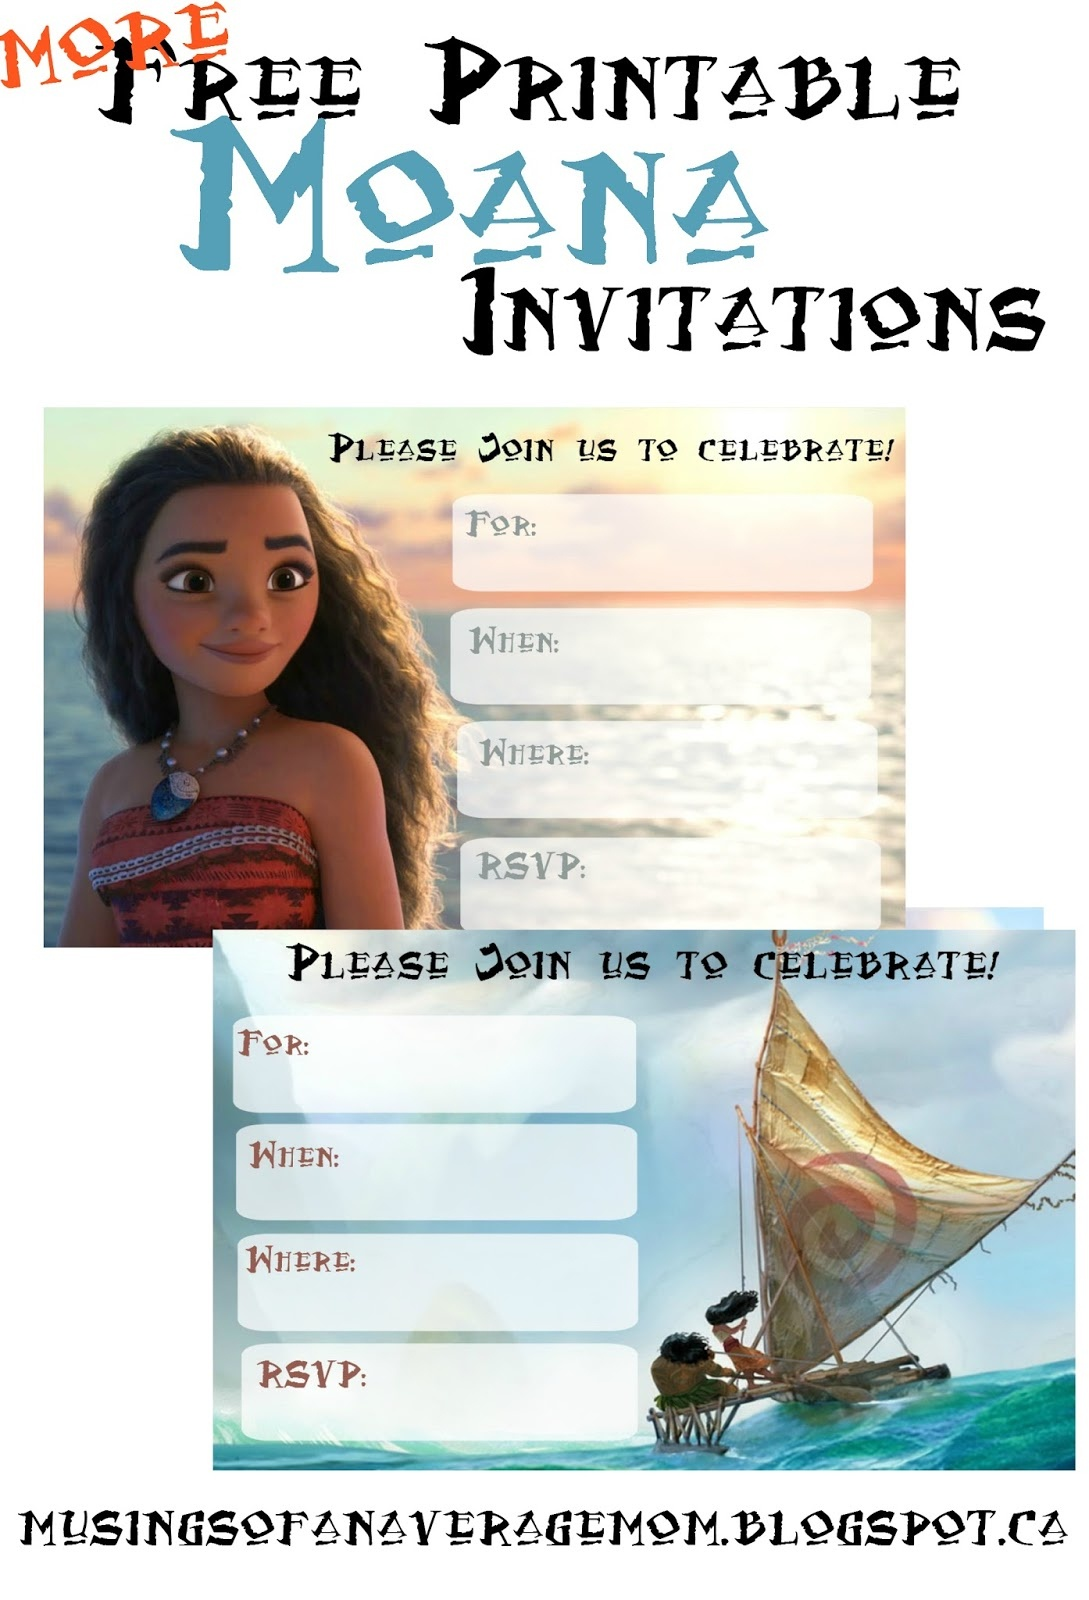 Musings Of An Average Mom: Free Printable Moana Invitations 2 - Free Printable Moana Birthday Invitations